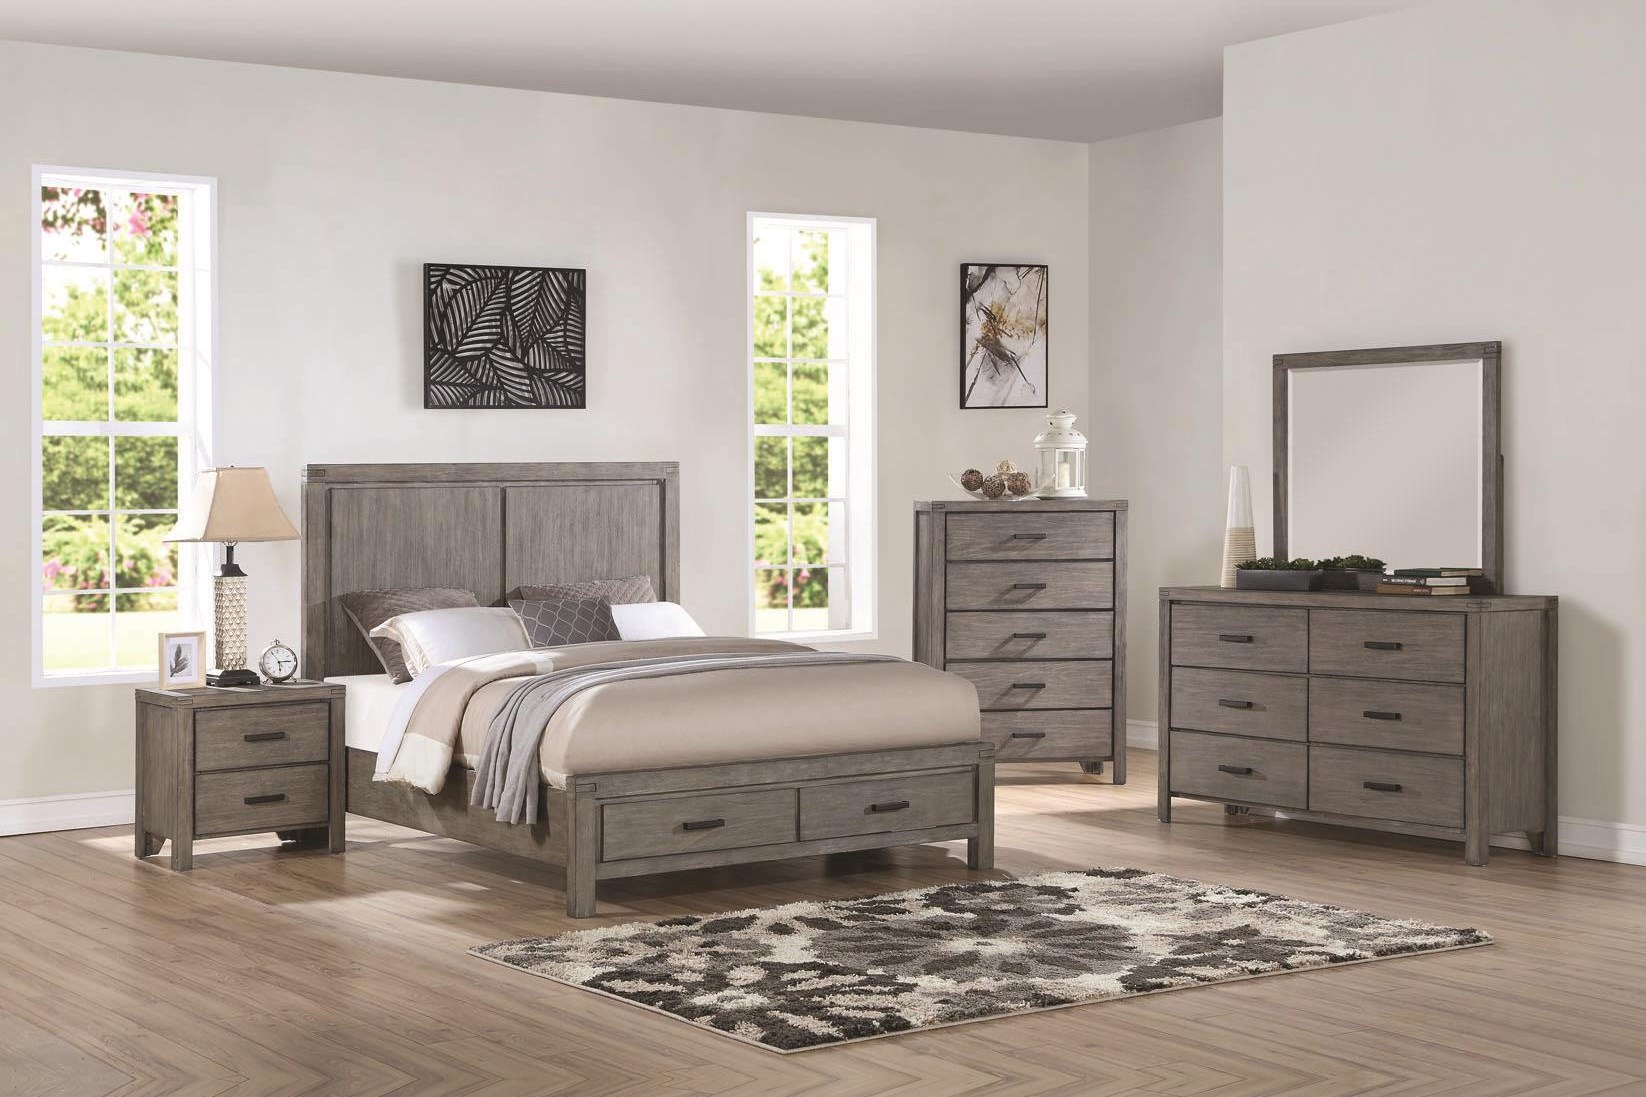 Cooperland Cooperland Queen Bedroom Set by Holland House at Morris Home